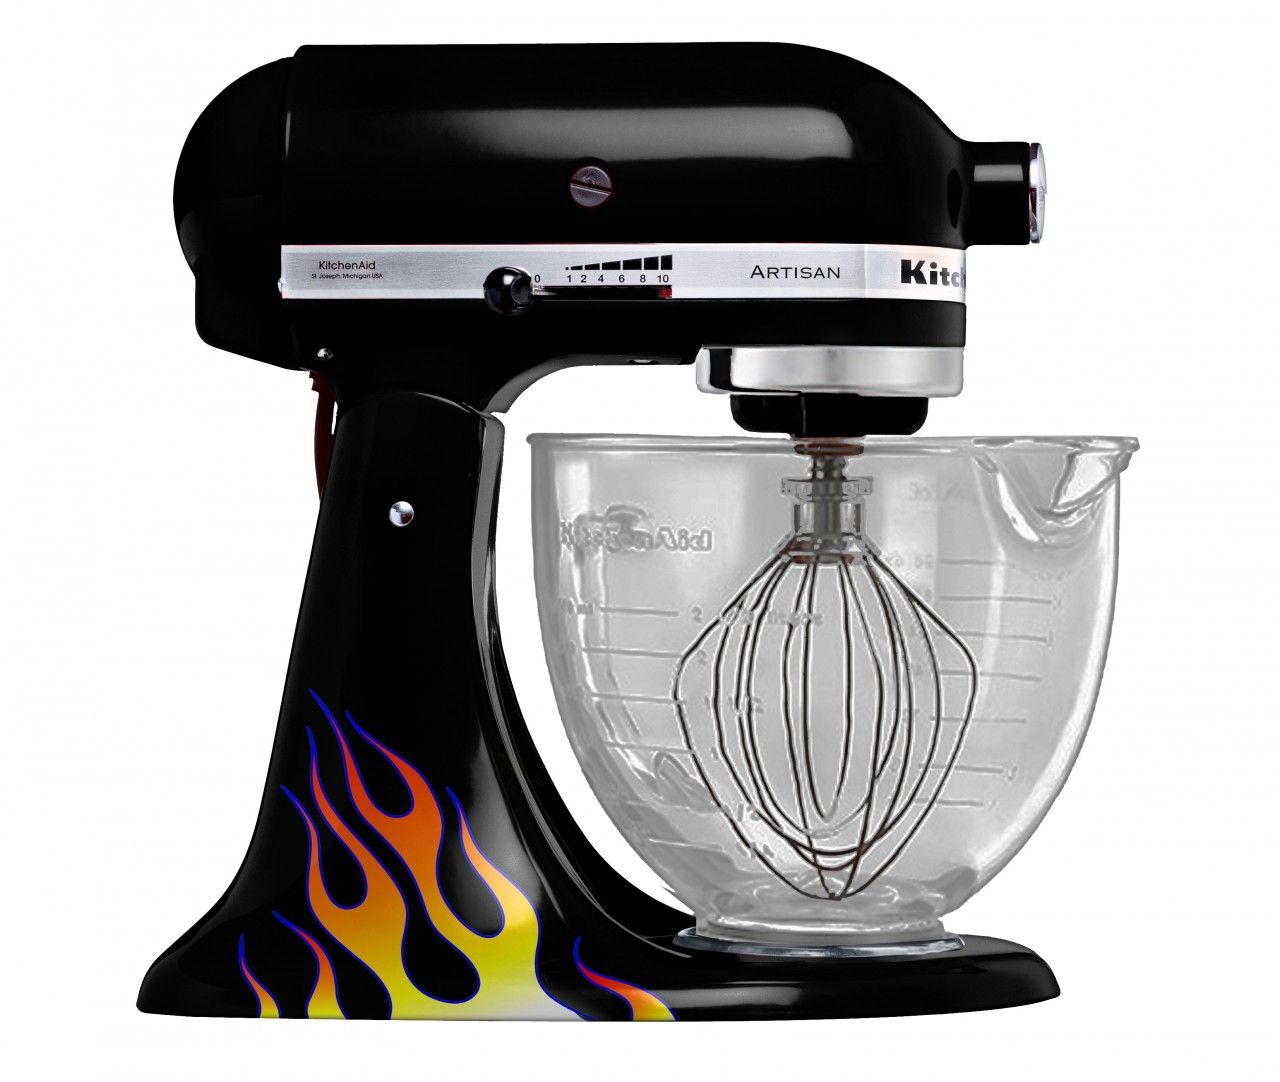 Decals Kitchen Aid Mixer Mixer Decal Fire Kitchen Aid